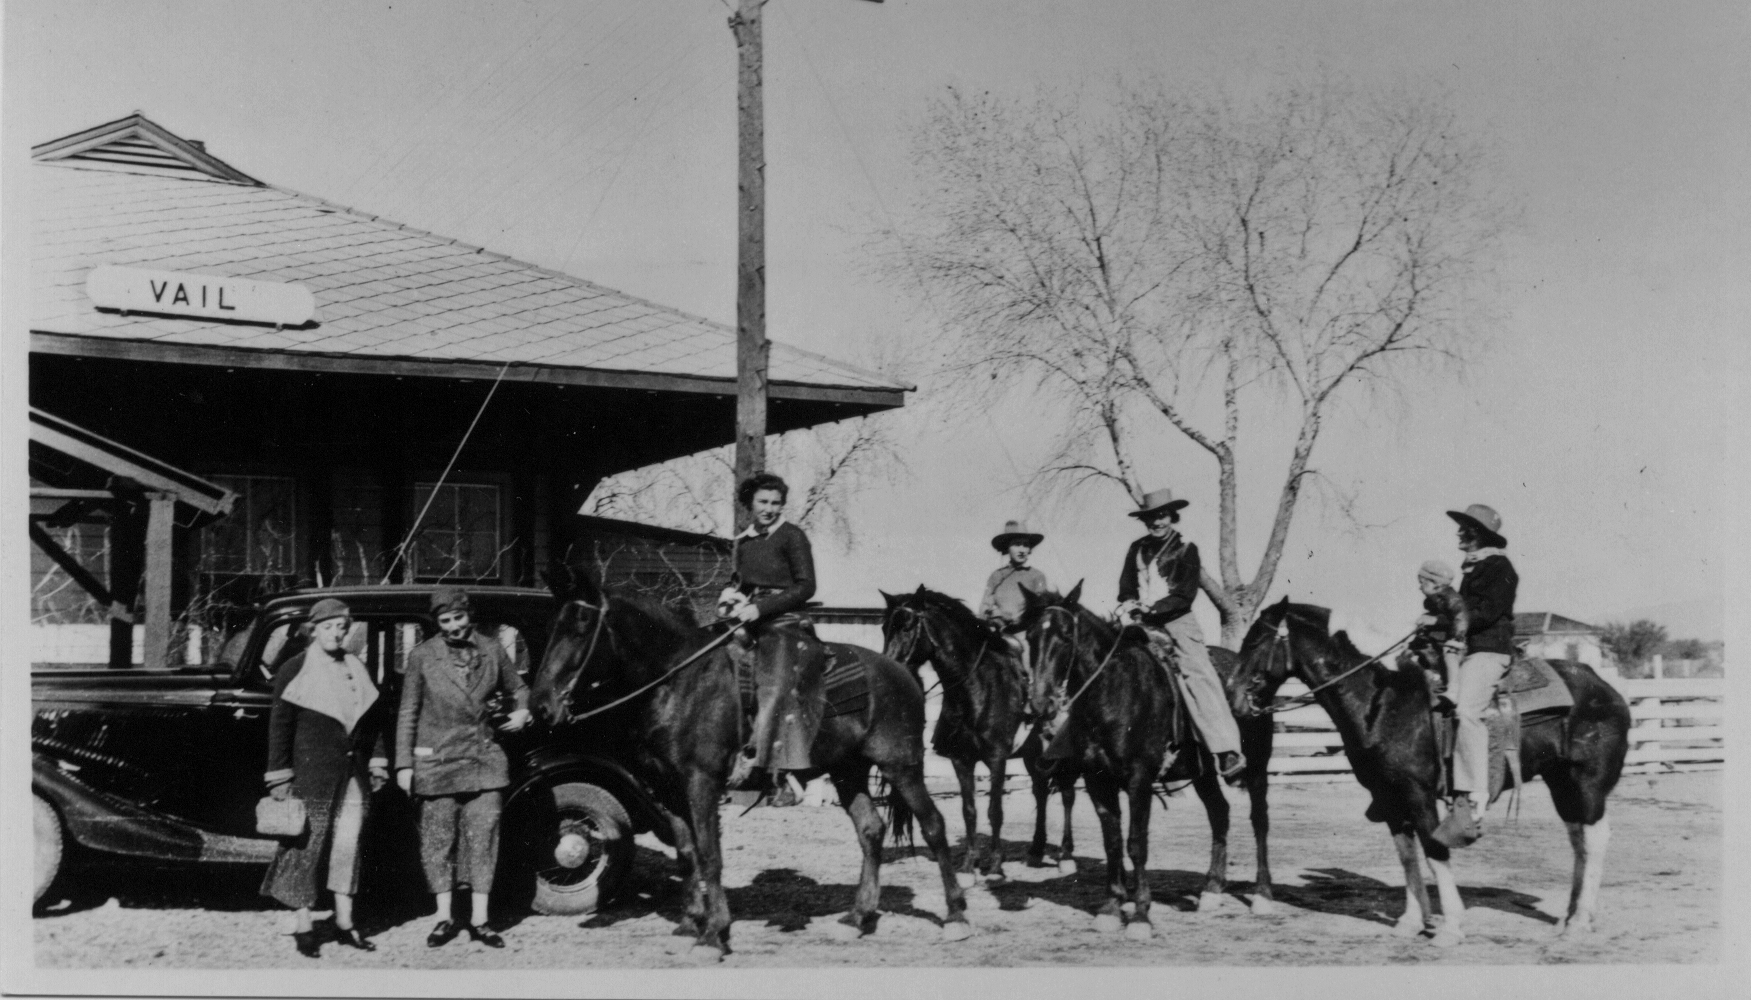 Women on horseback in front of the Vail Depot Circa 1935.